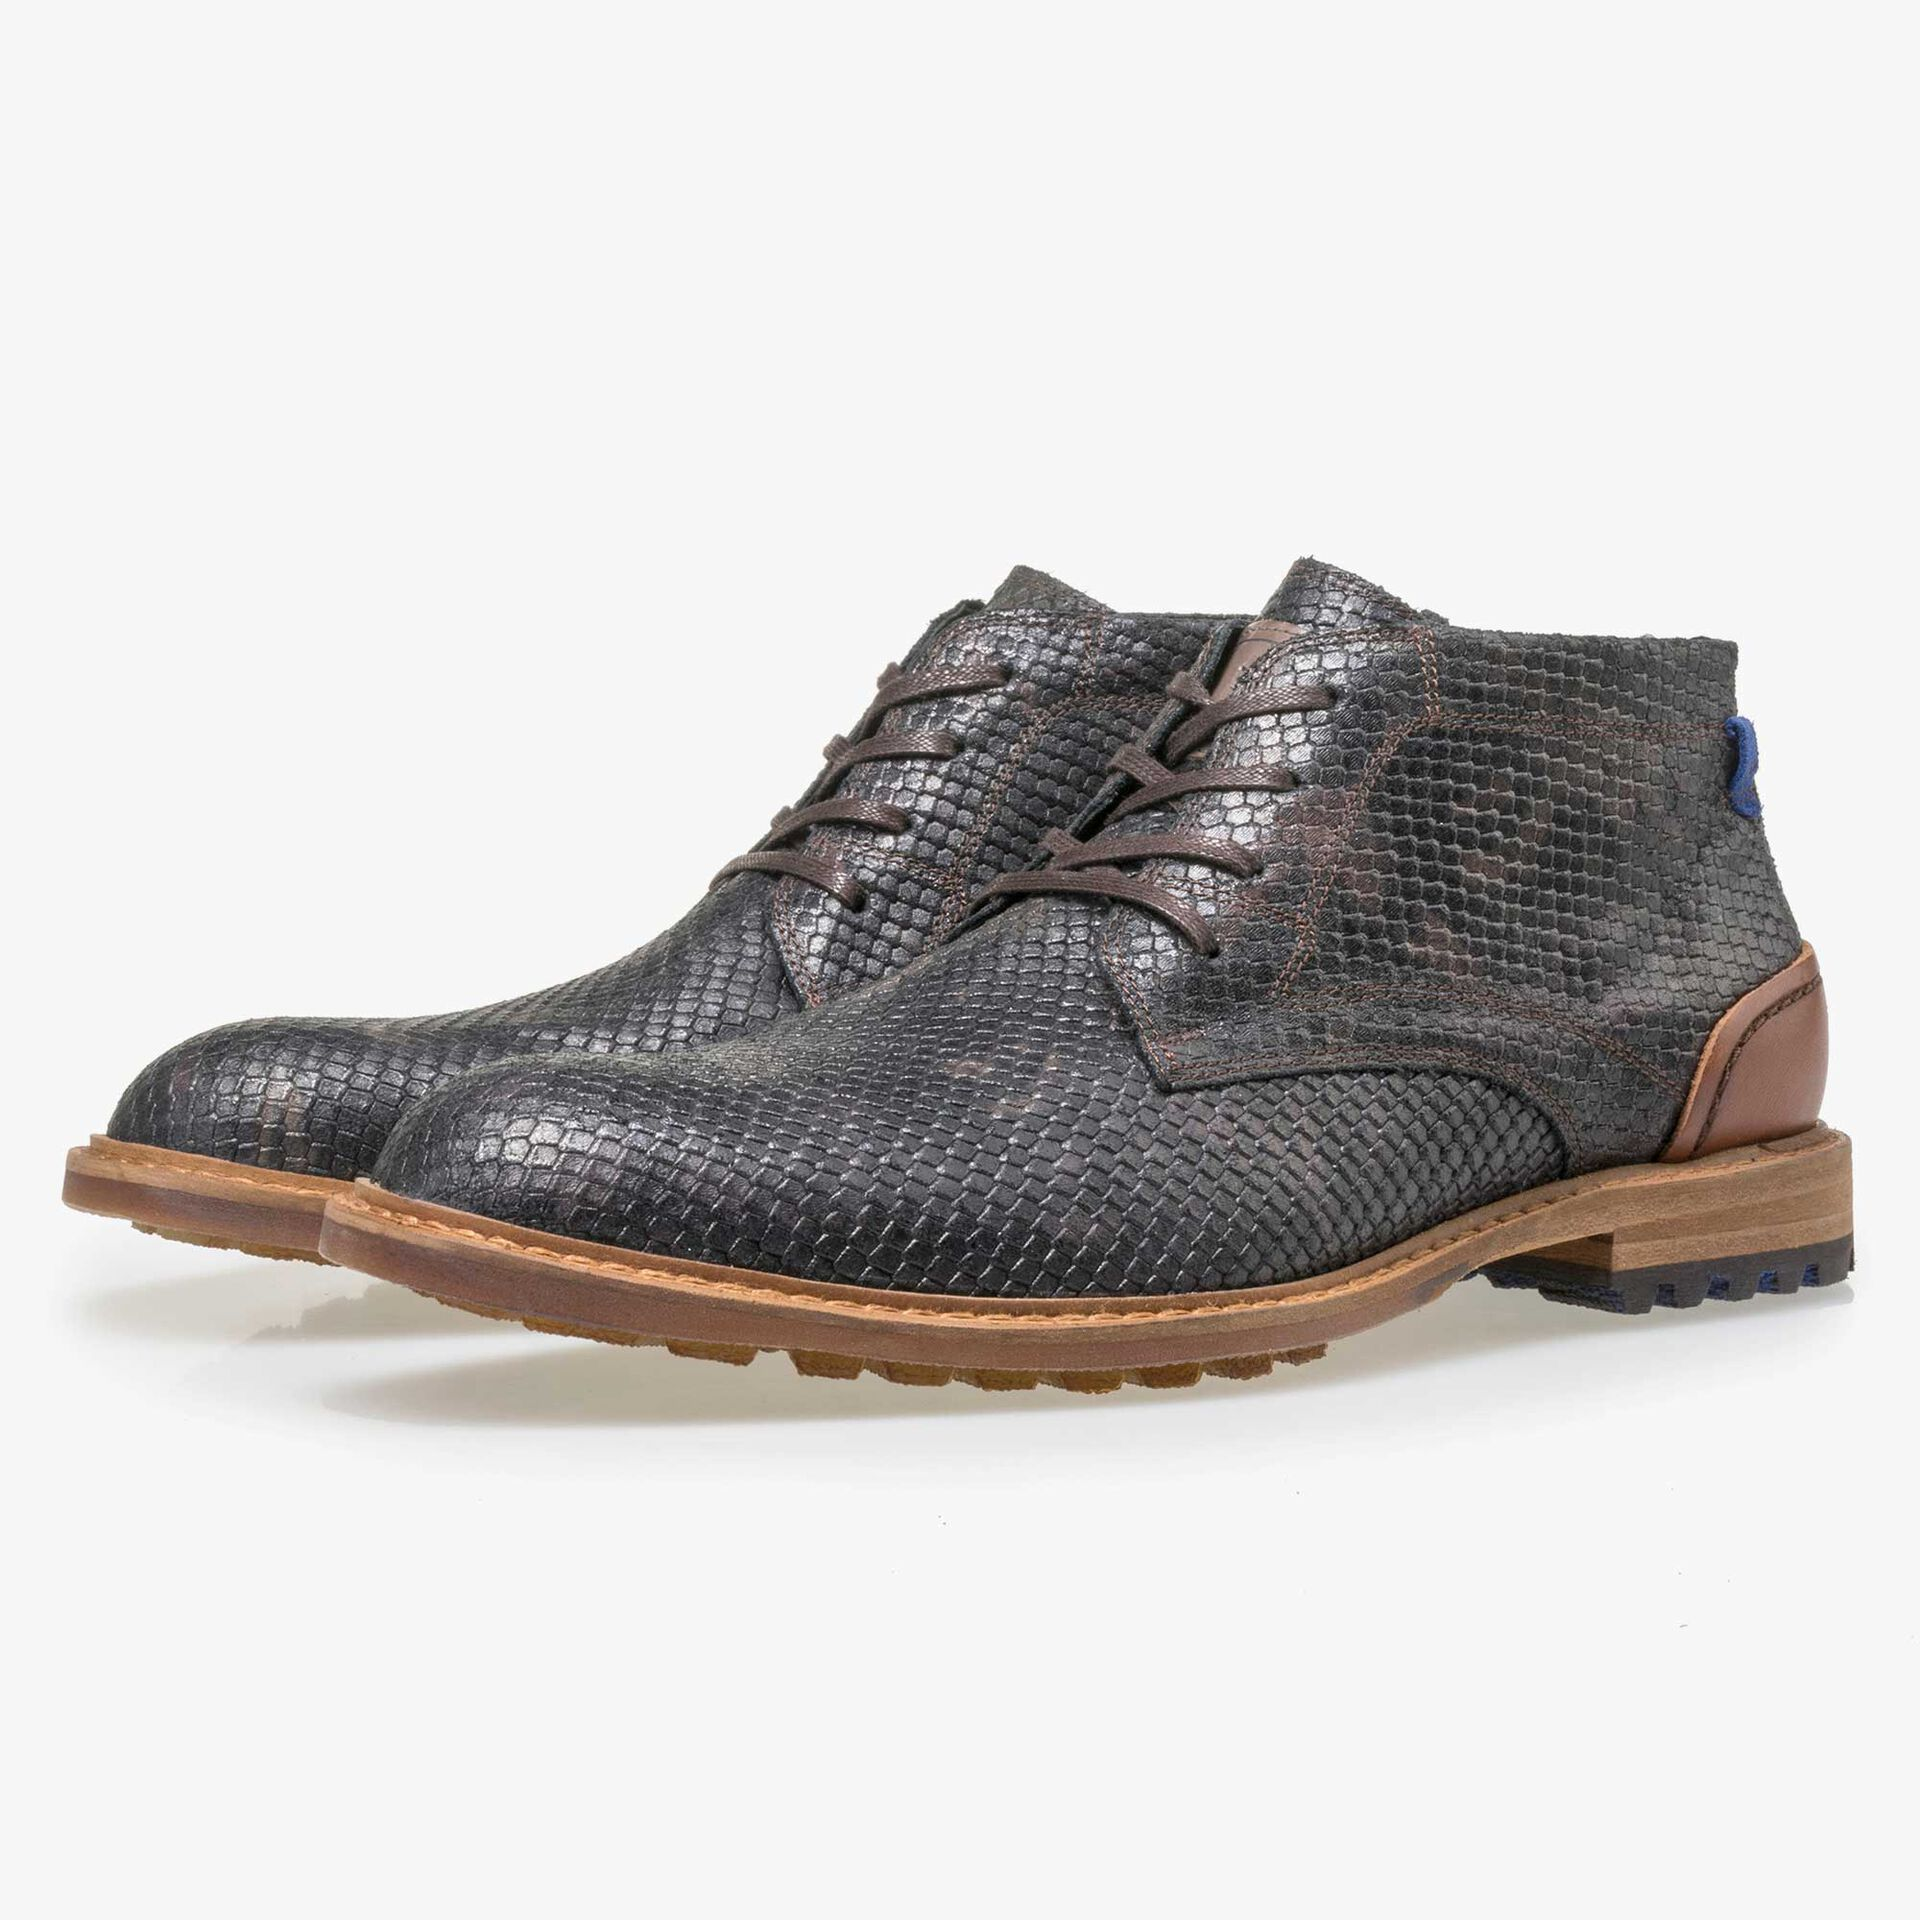 Floris van Bommel men's black leather lace boot finished with a snake print